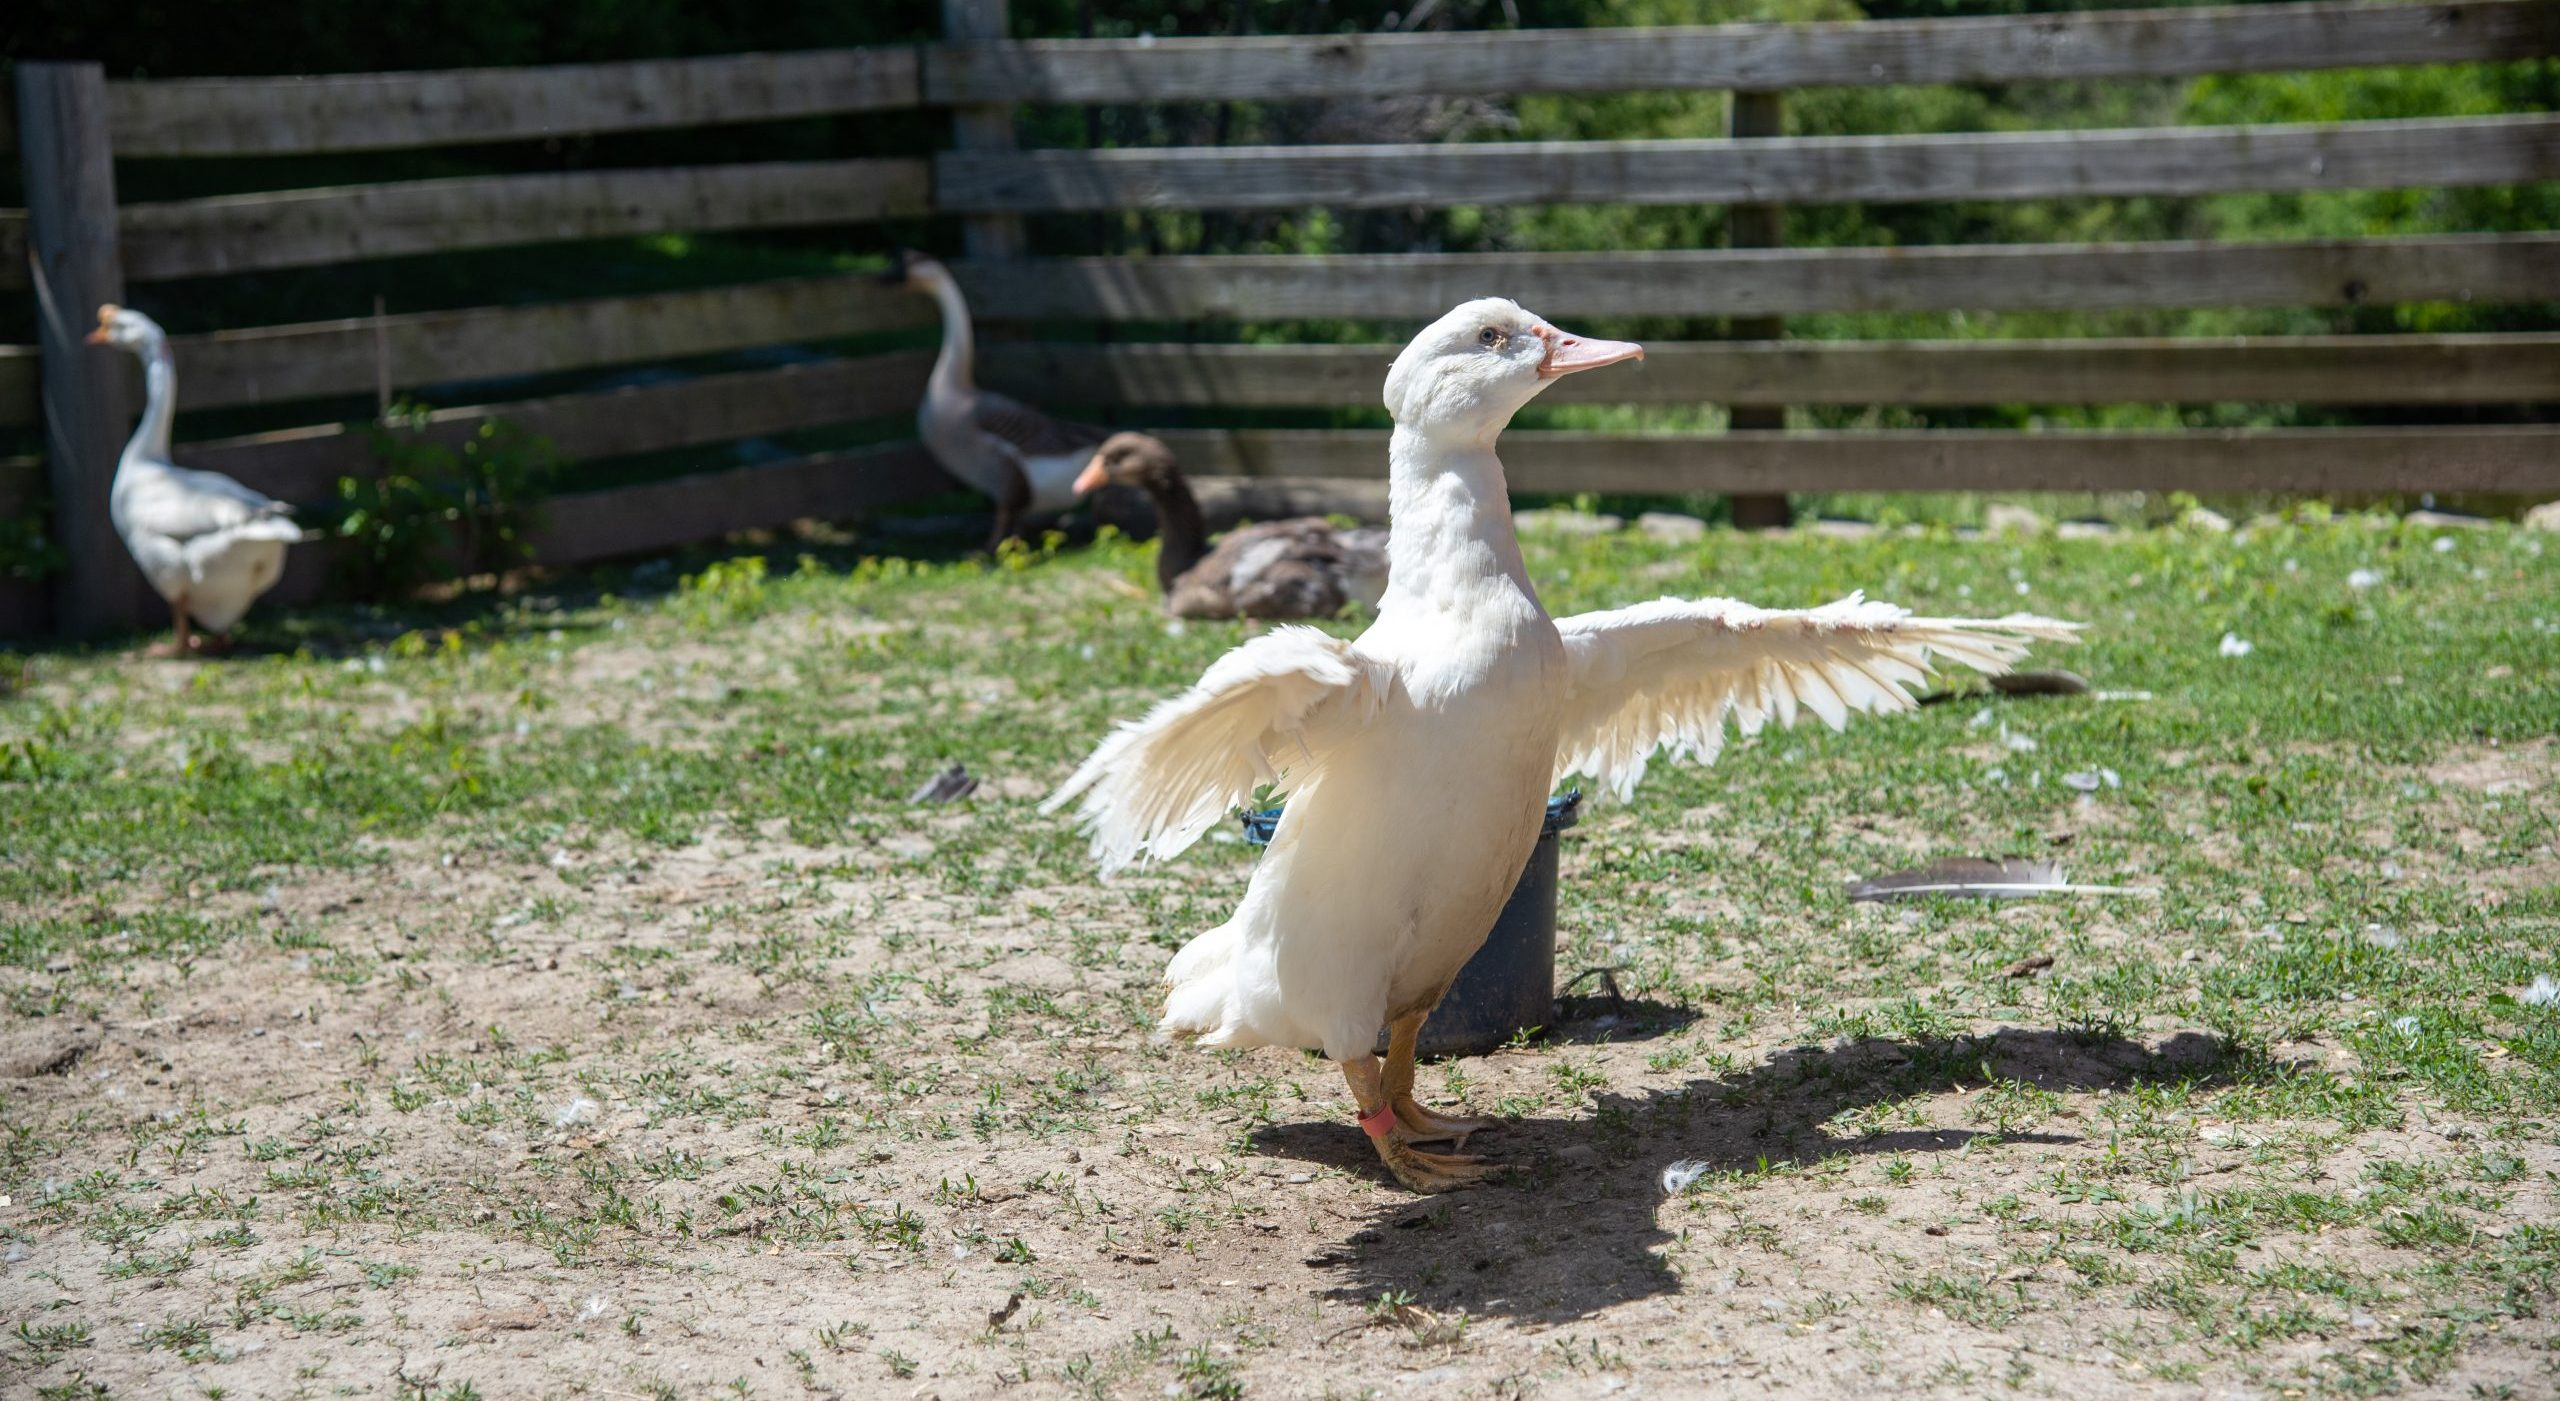 Carrie Duck at Farm Sanctuary's New York shelter